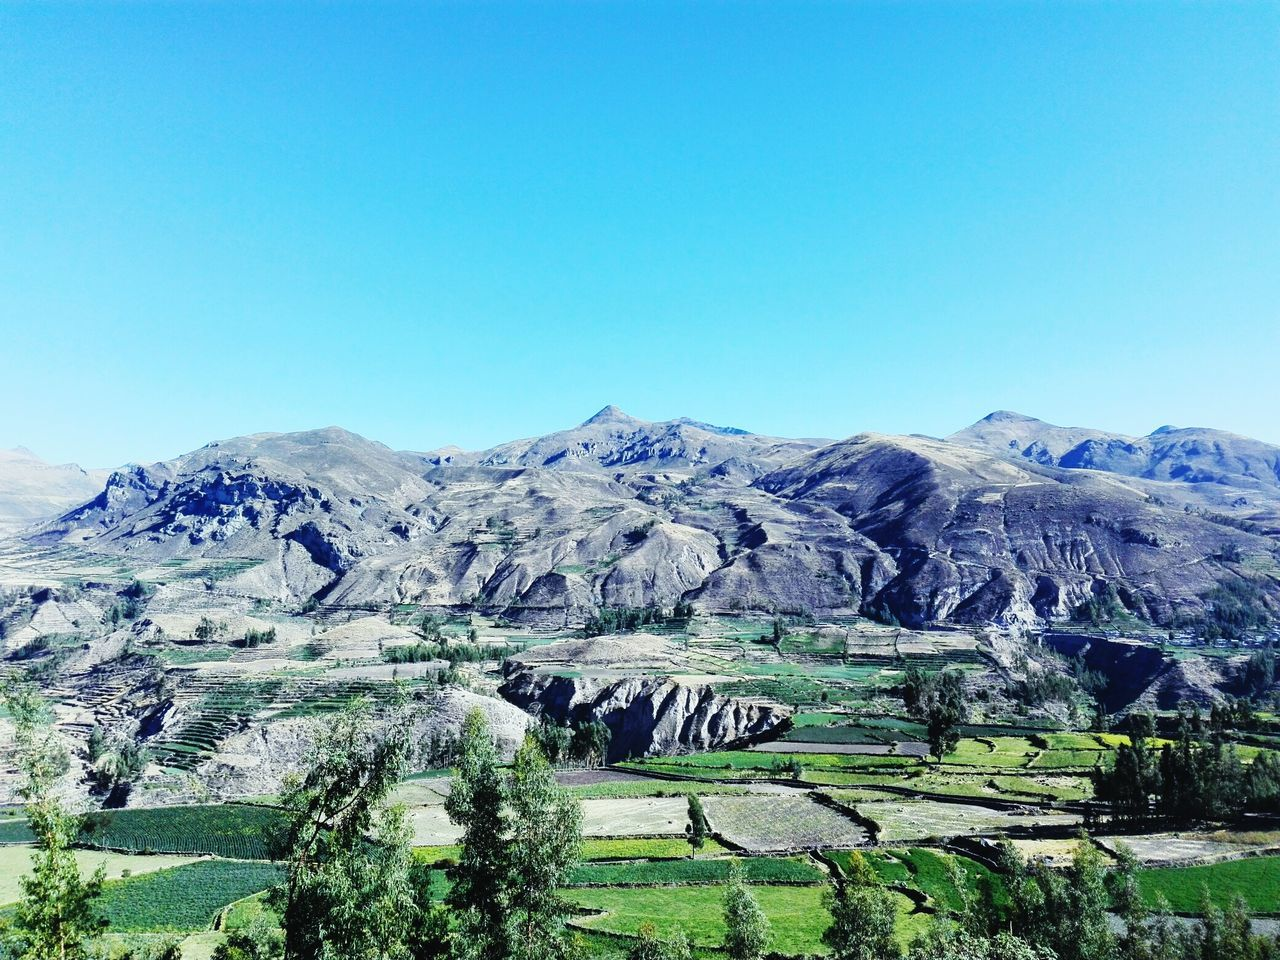 nature, beauty in nature, tranquil scene, landscape, blue, scenics, clear sky, tranquility, copy space, mountain, geology, no people, outdoors, day, physical geography, sky